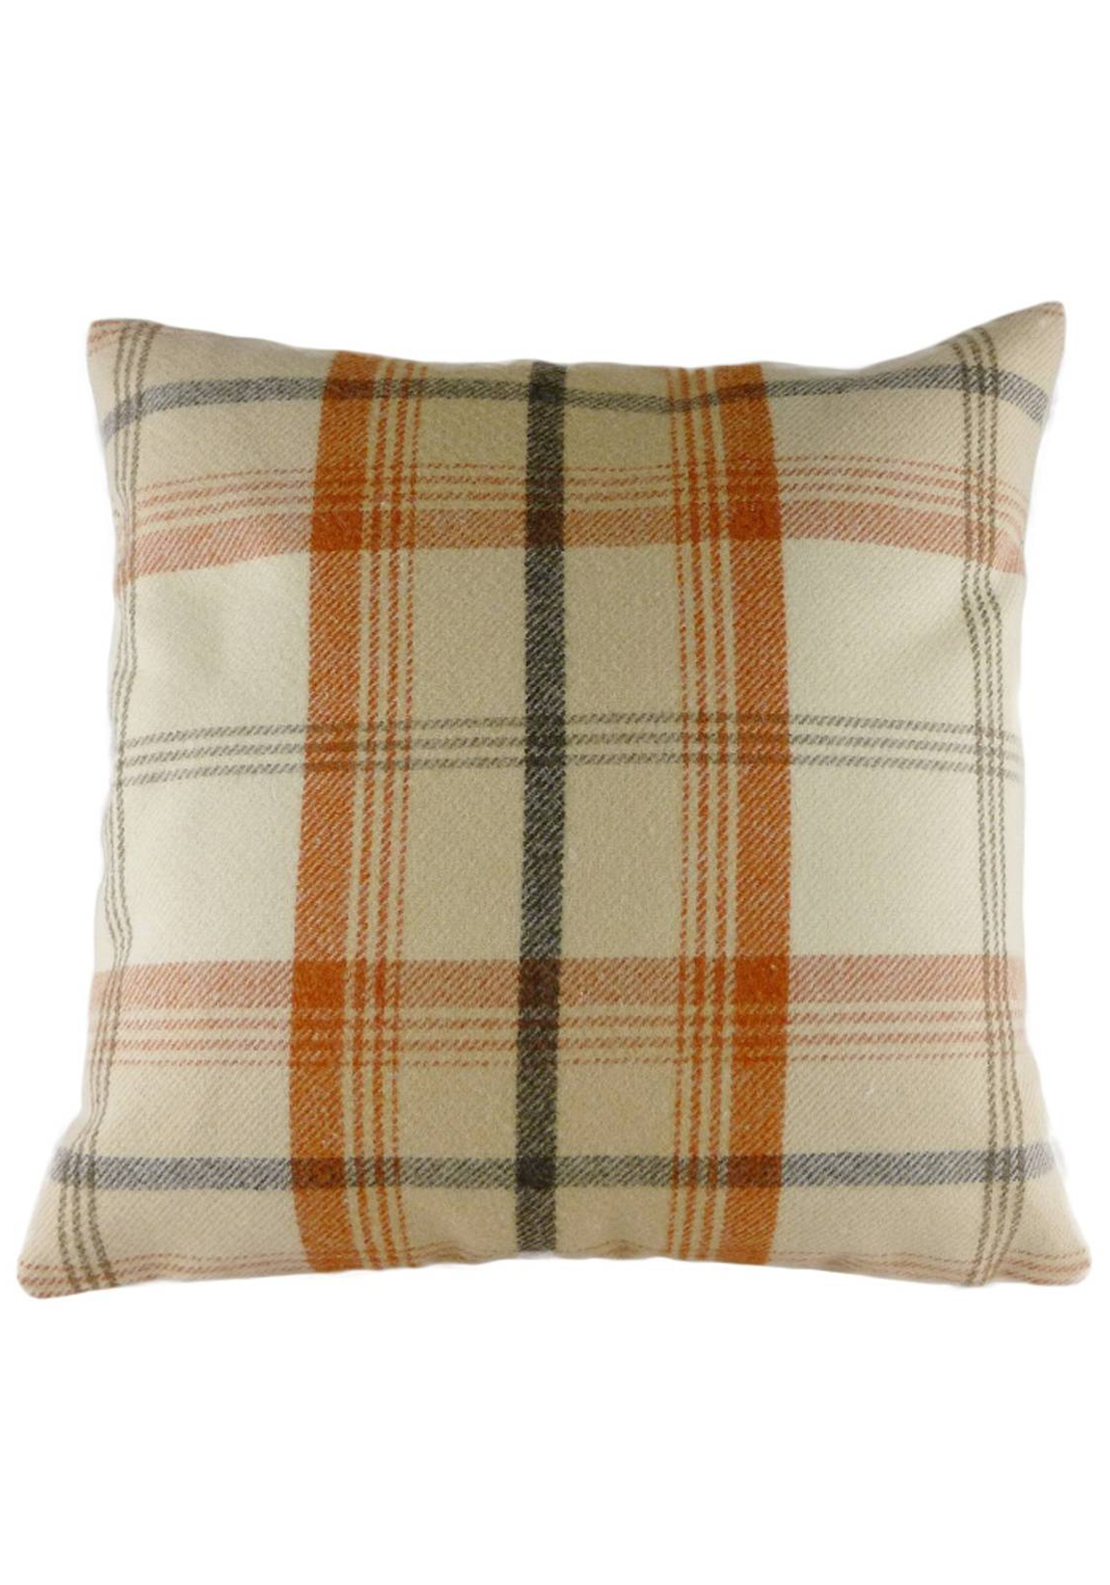 Evans Balmoral Autumn Filled Cushion, 42 x 42cm Cream Multi